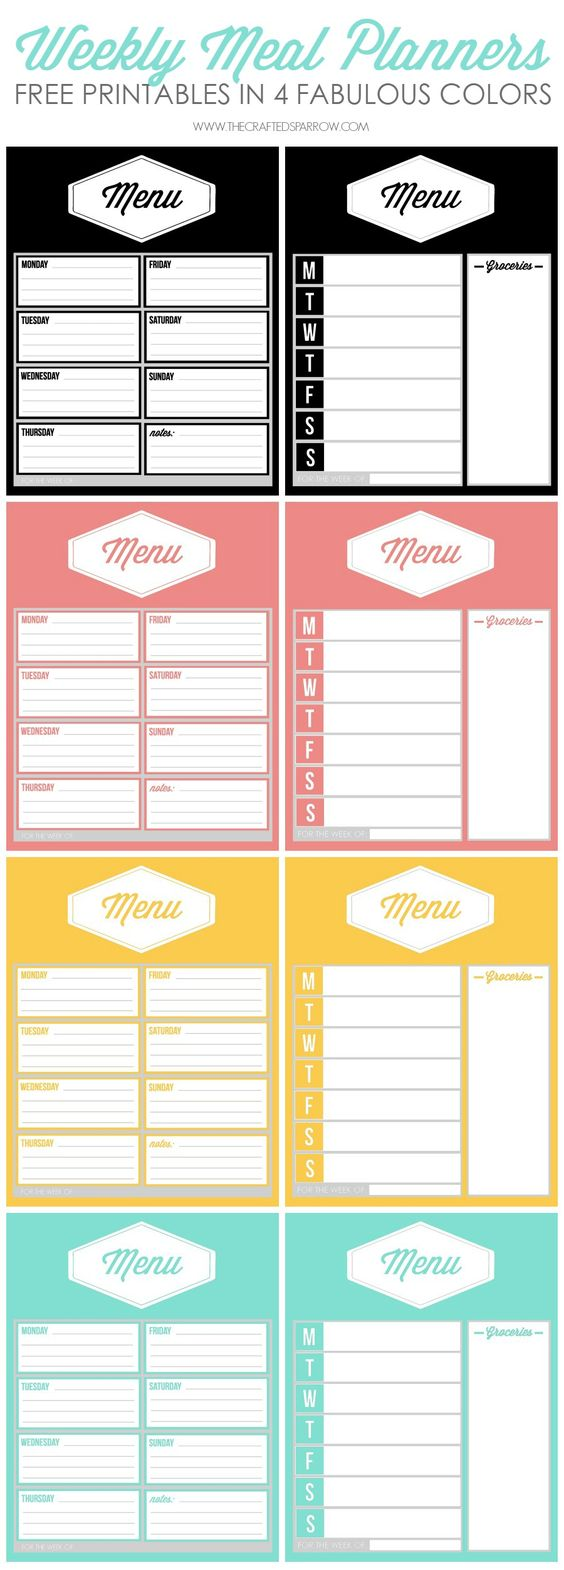 Weekly Calendar Meal Planners : Super pretty free meal planners for busy boss babes